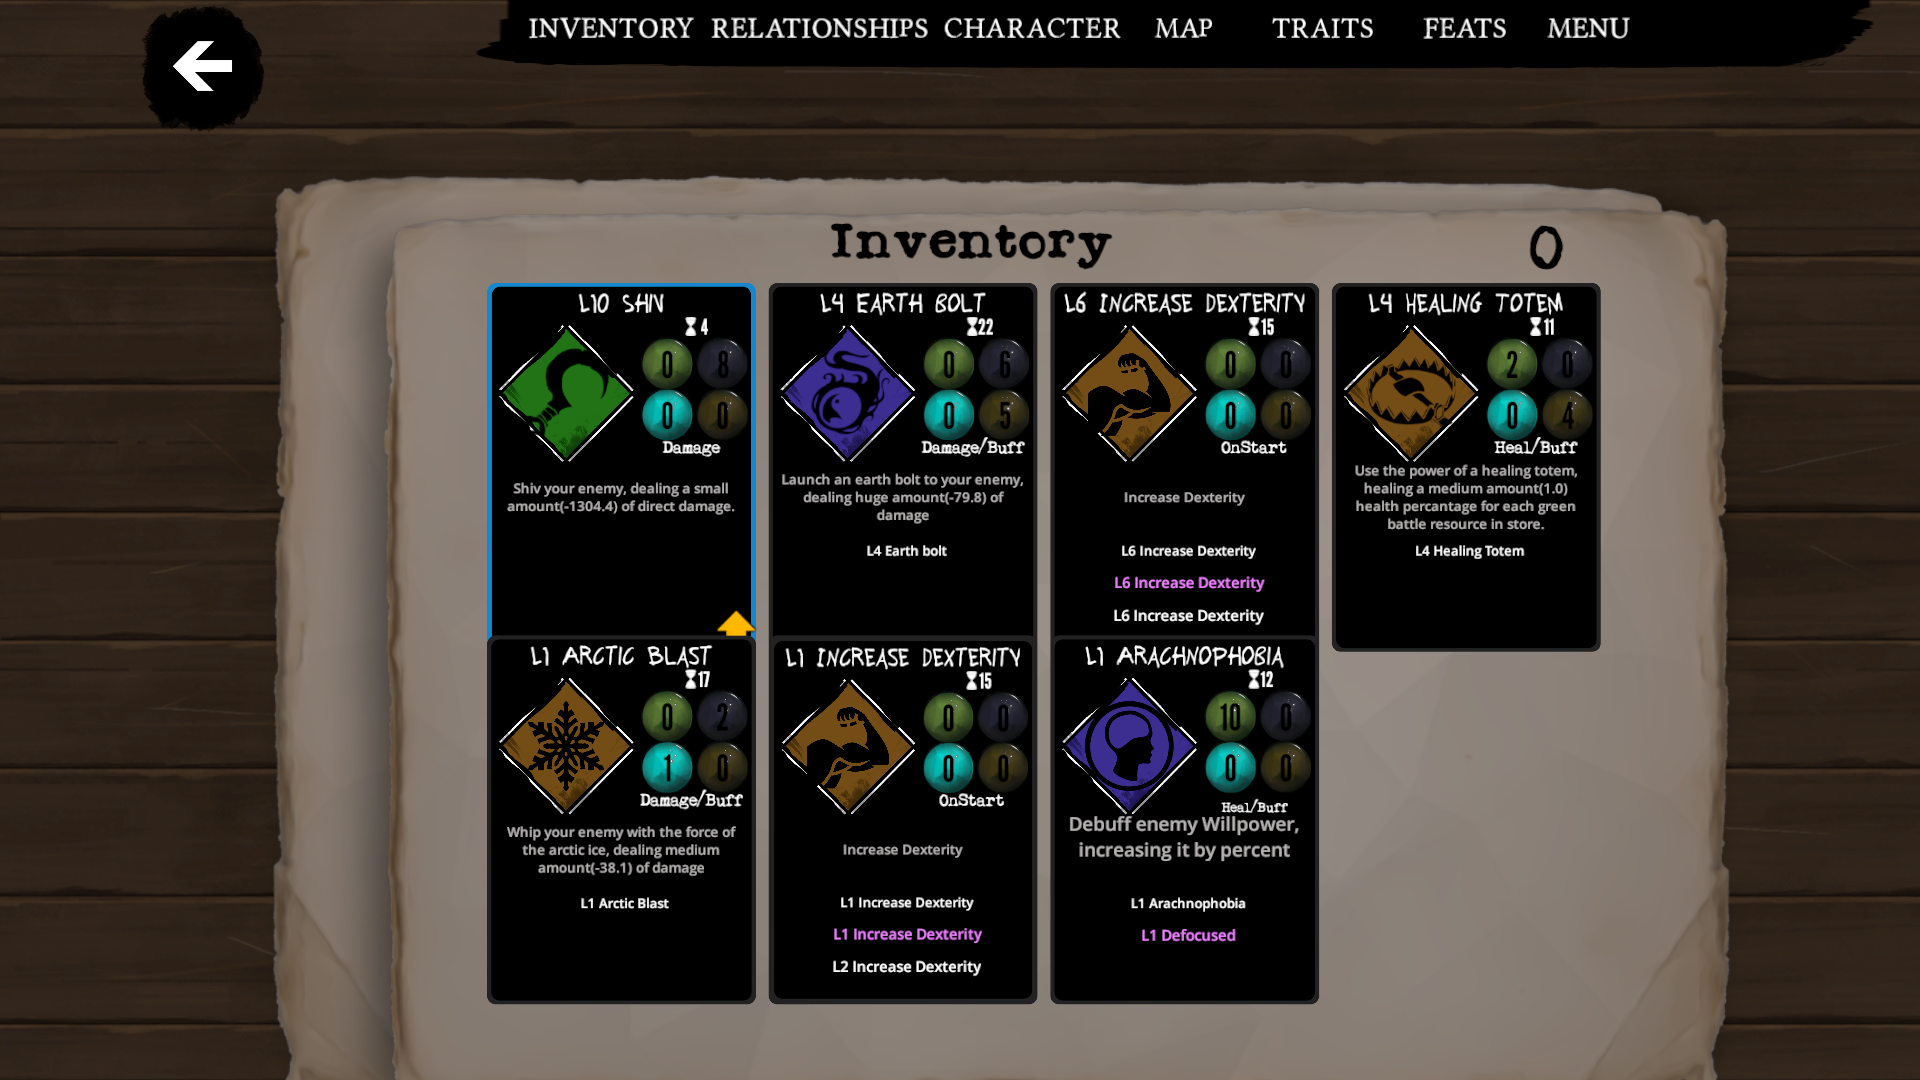 Ability inventory